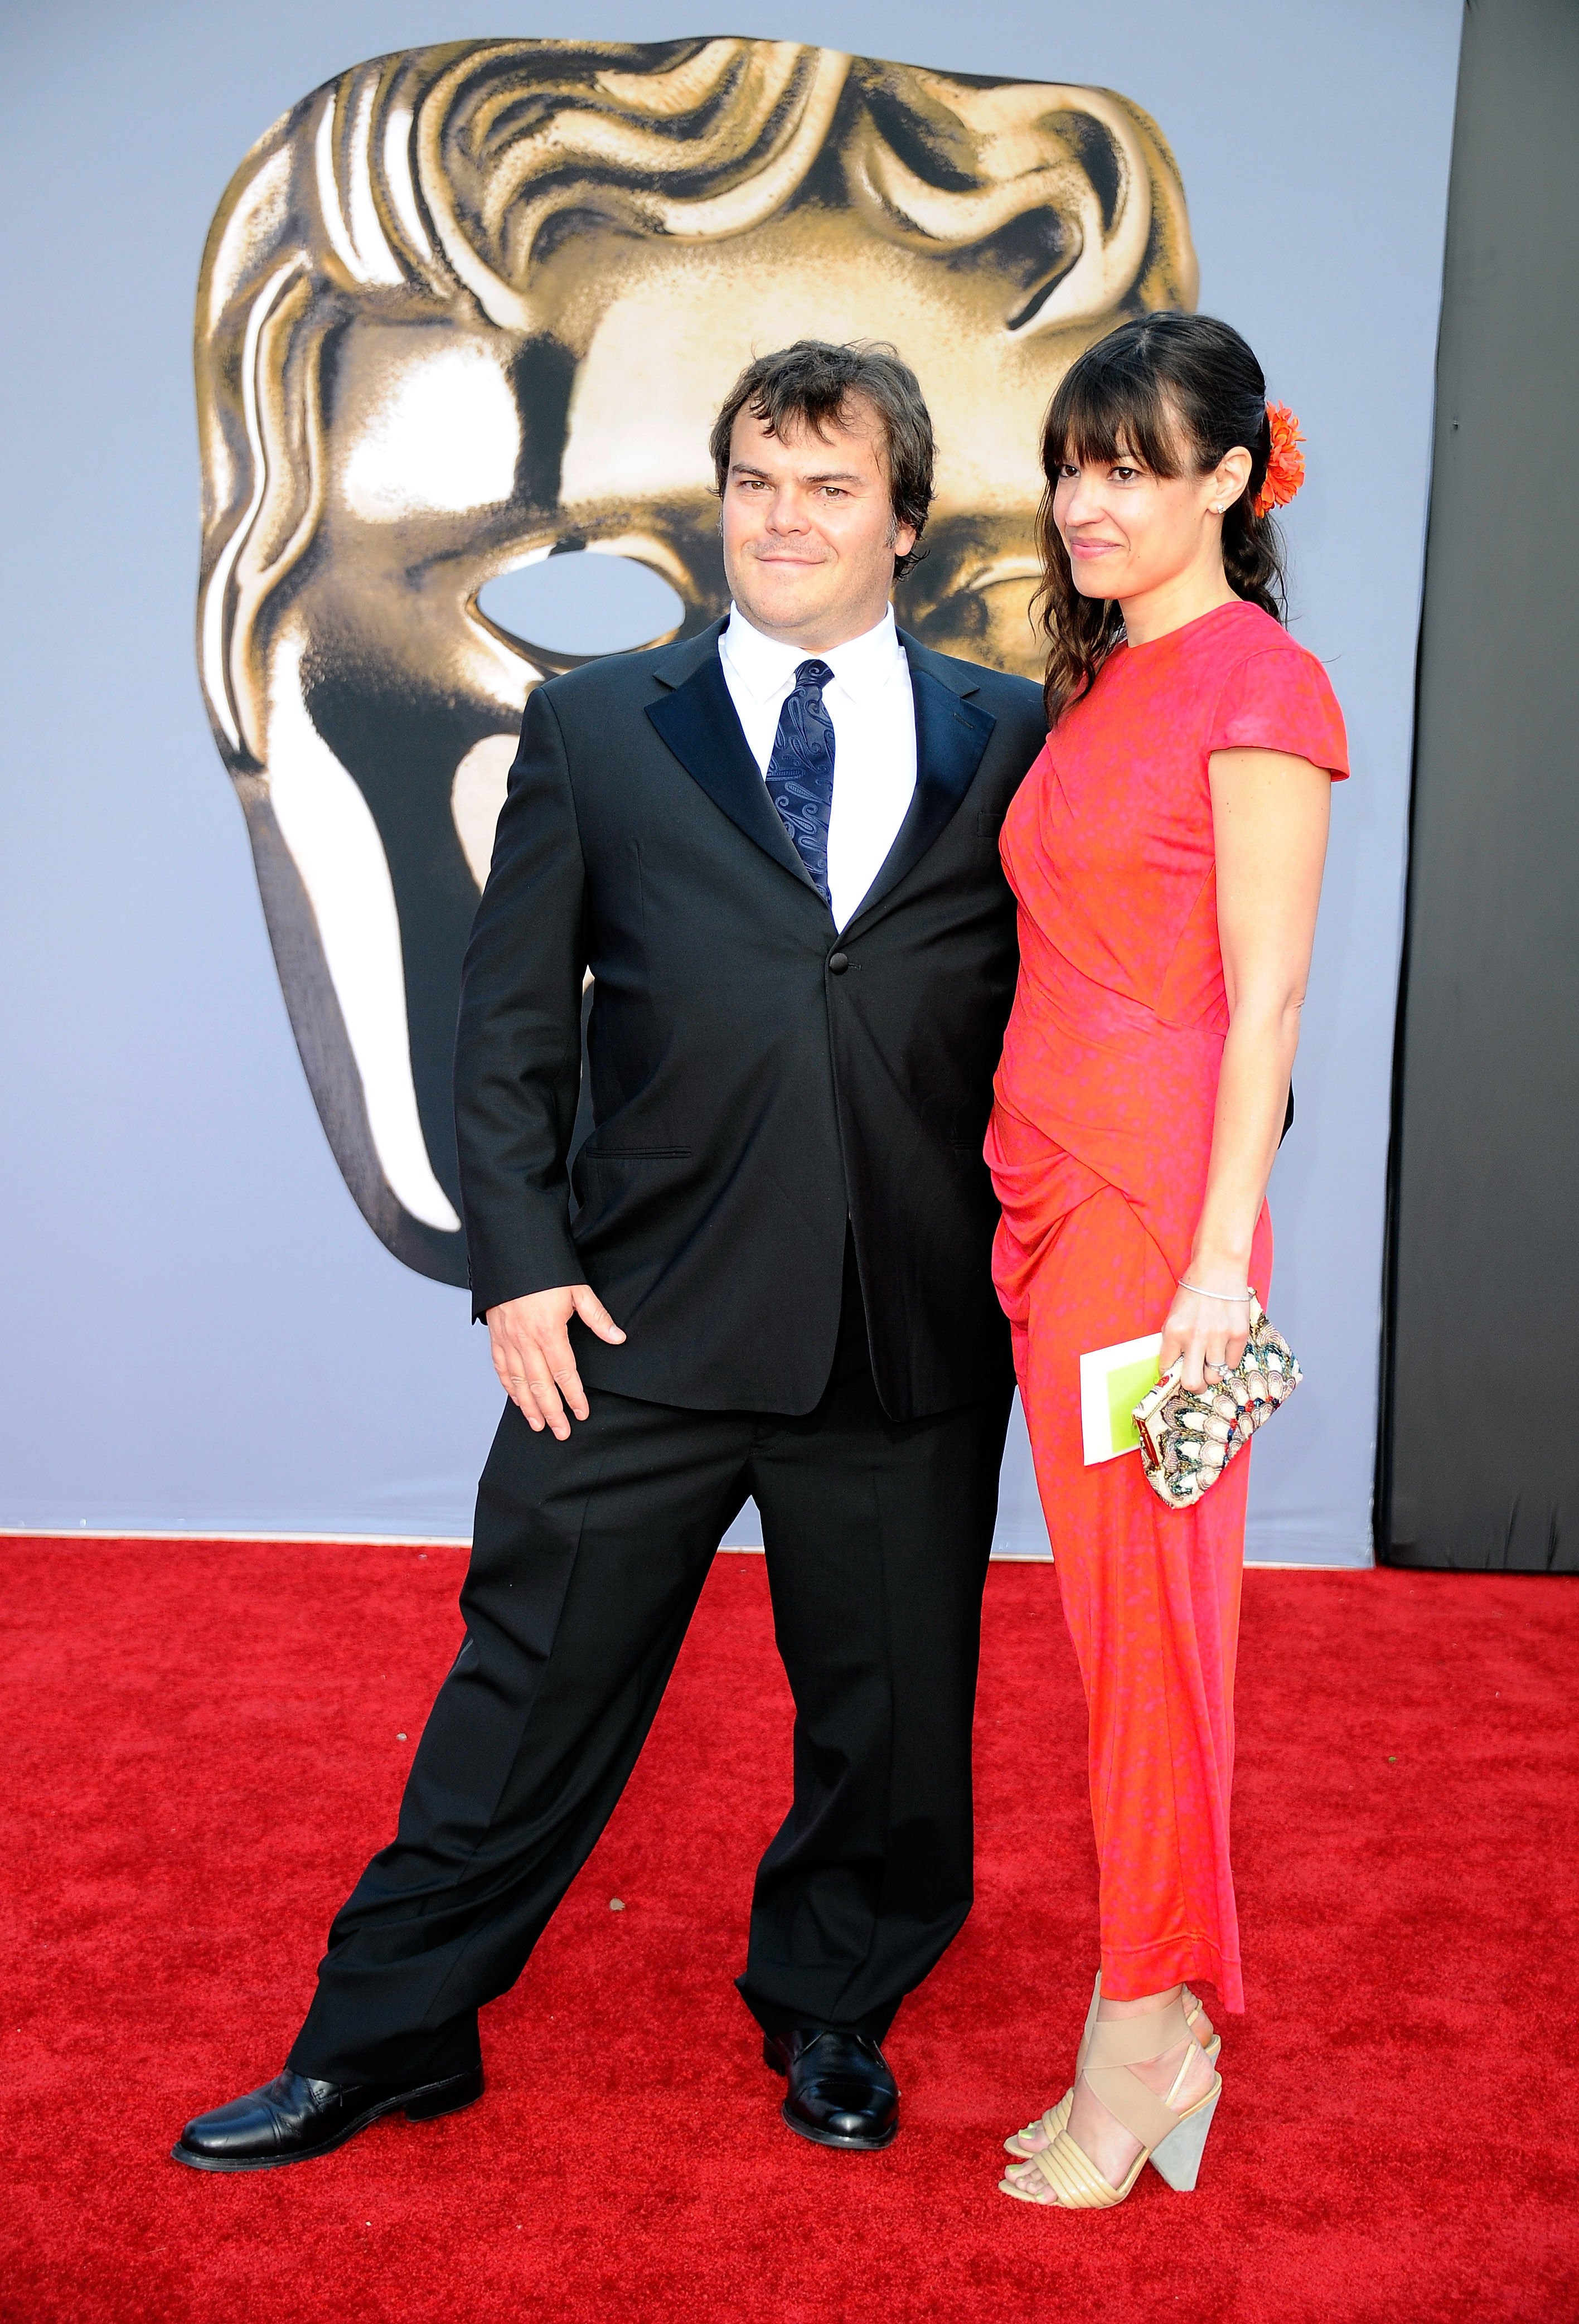 Jack Black at the BAFTA Brits to Watch event in LA.